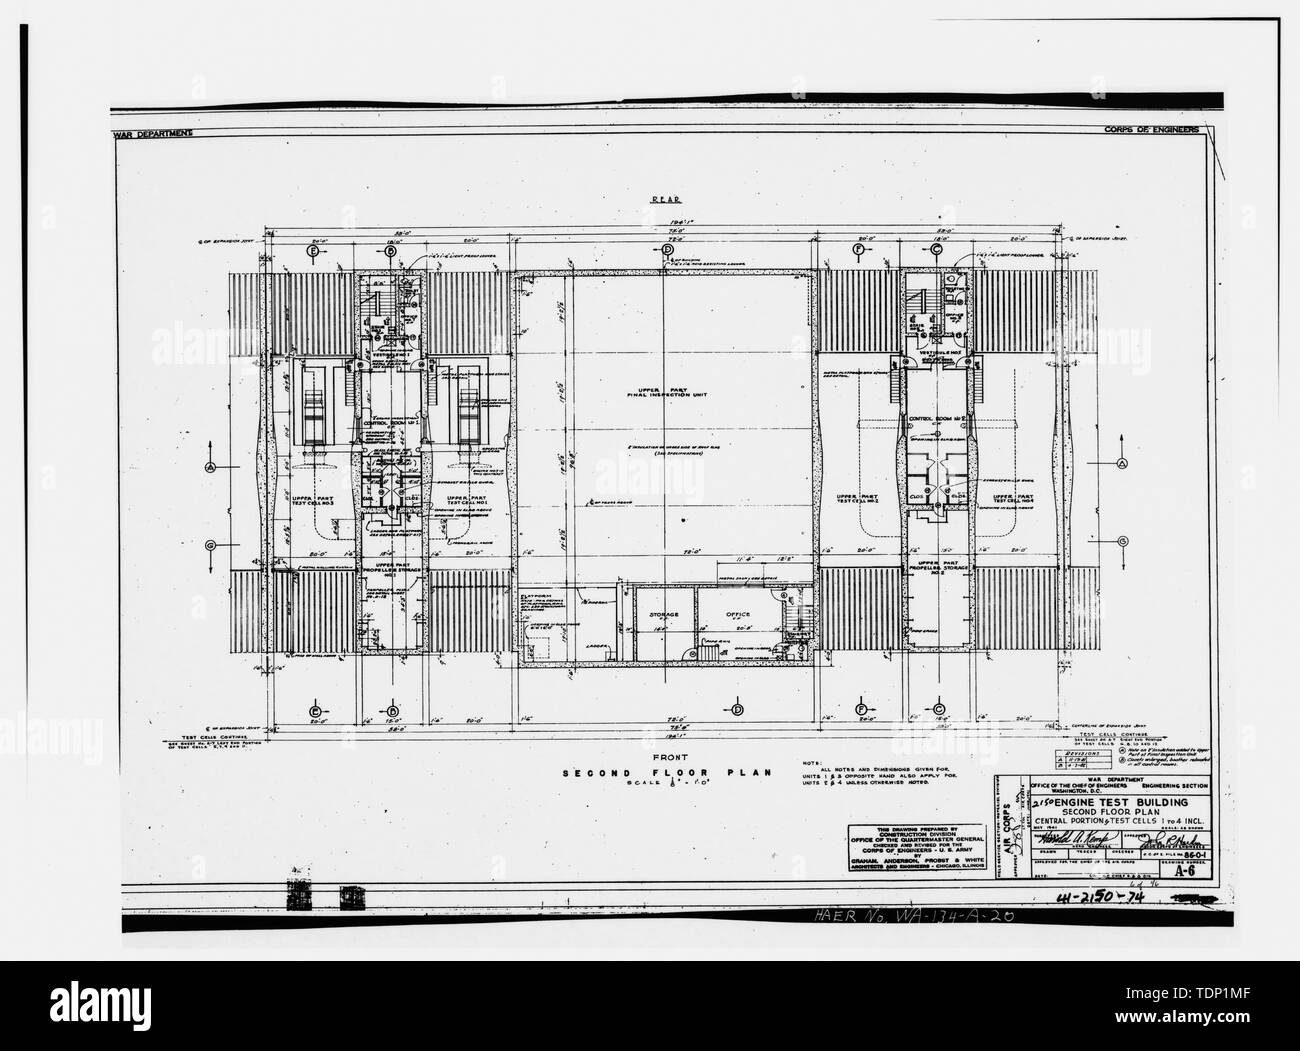 Photocopy Of Engineering Drawing May 1941 Original Drawing Located At Fairchild Air Force Base Civil Engineering Building Civil Engineering Vault Engine Test Cell Building Second Floor Plan Central Portion And Test Cells,Table Engagement Decoration Ideas At Home